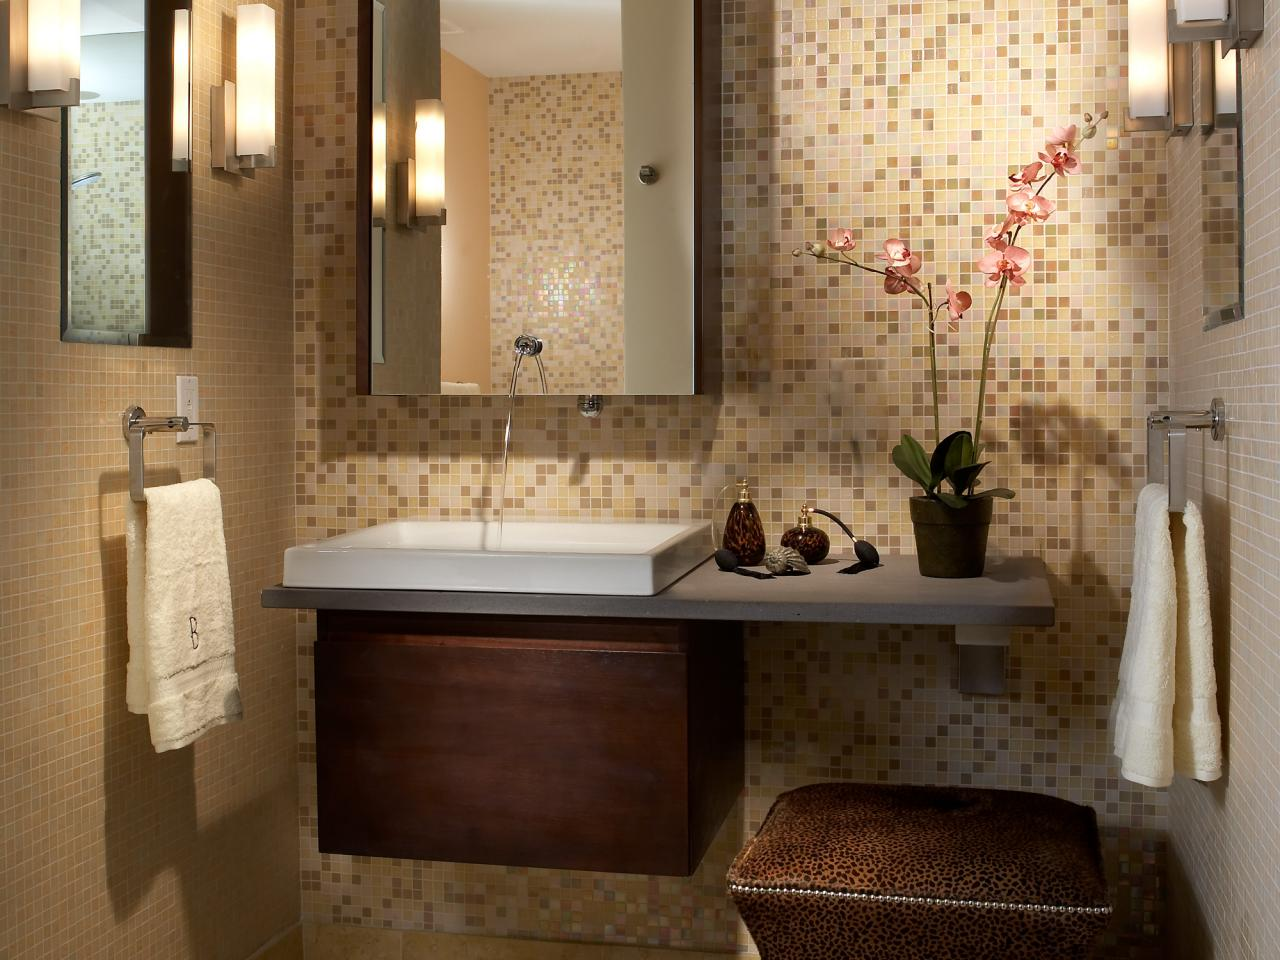 Beautiful Bathroom Backsplash Ideas Using Small Tile also Lavish Wall Lamps